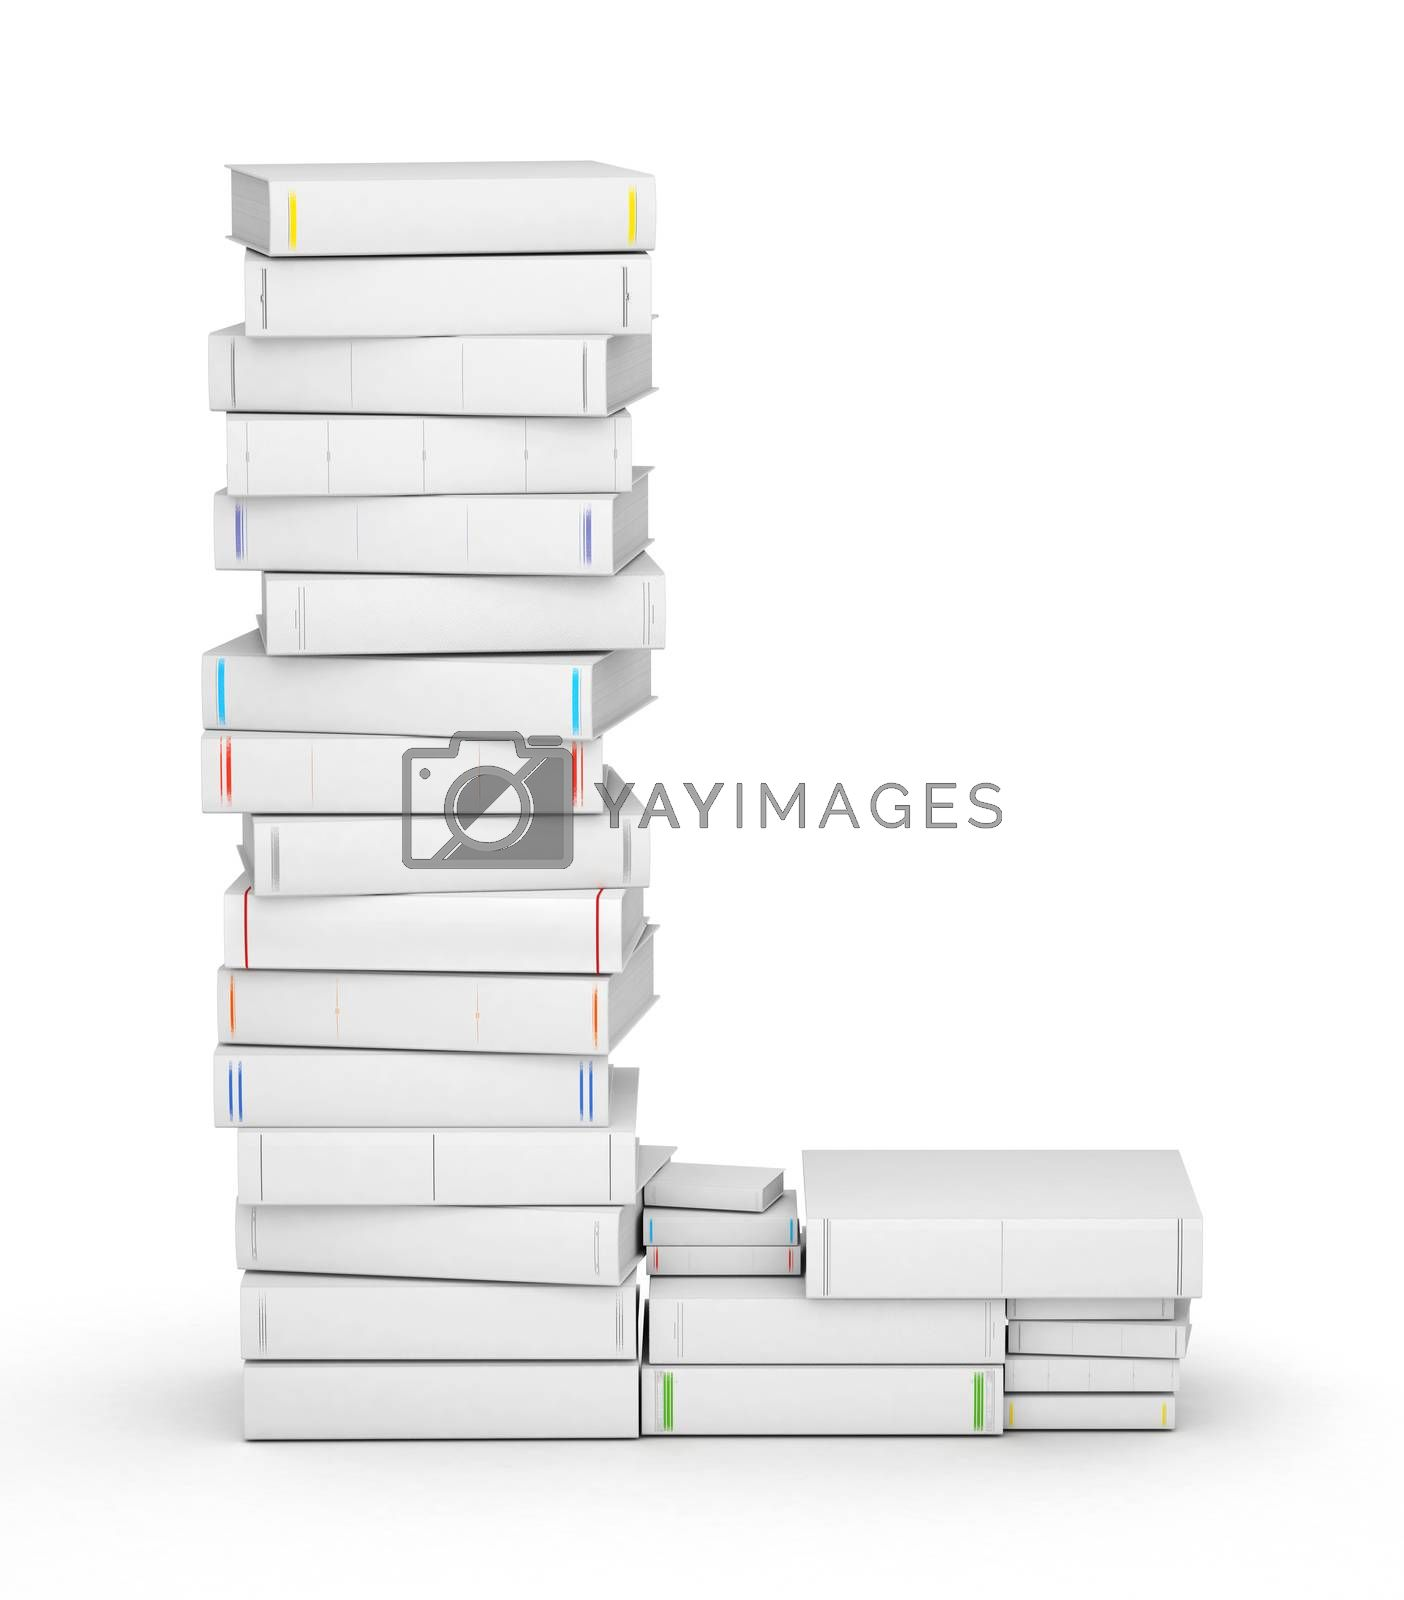 Royalty free image of Letter L, stacked from blank books by iunewind